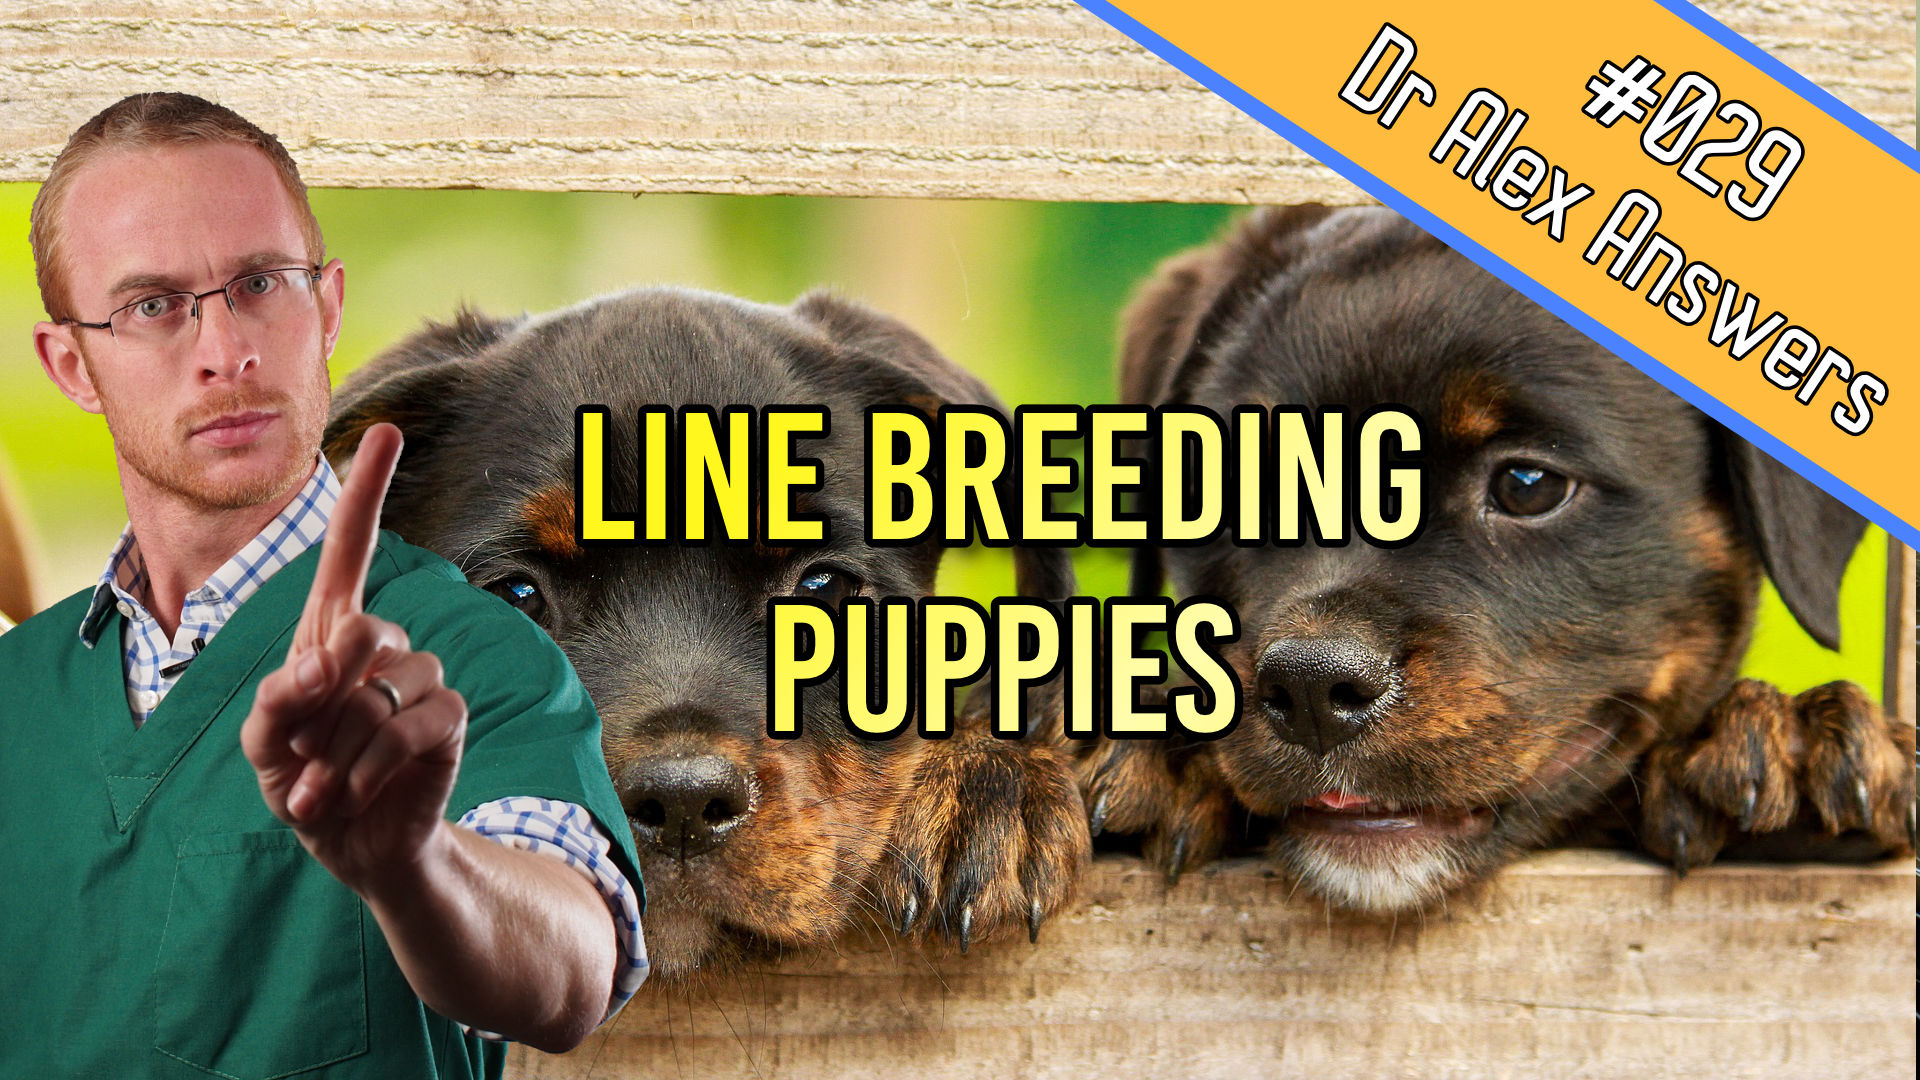 DAA line breeding.jpg